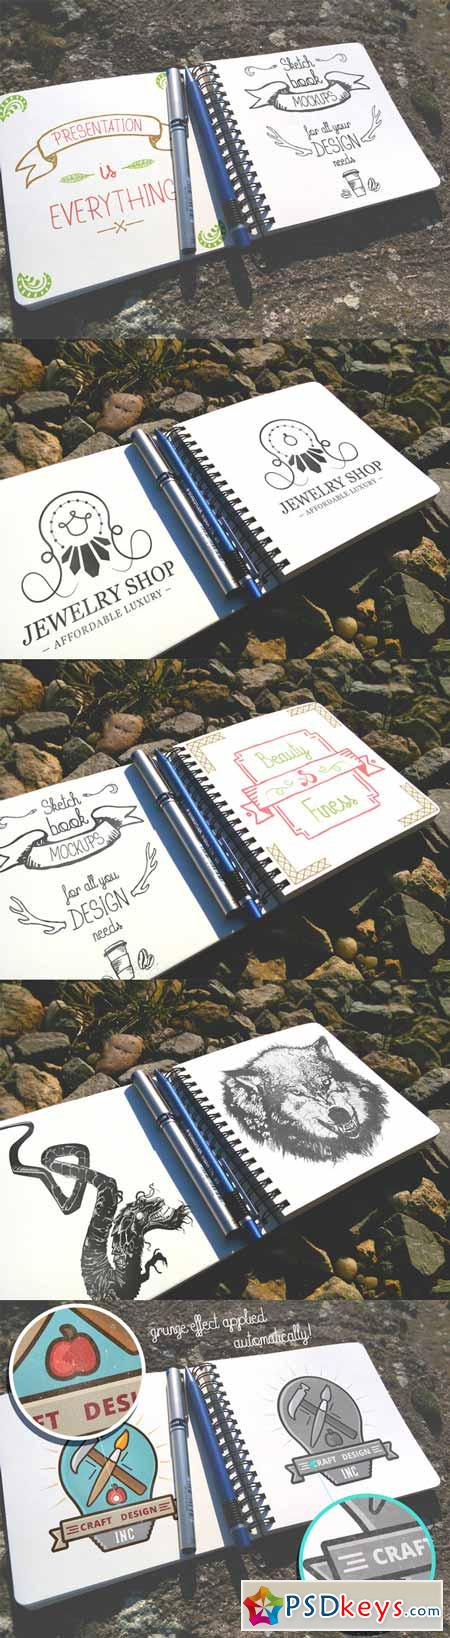 Outdoor Sketchbook Mock-up 193108